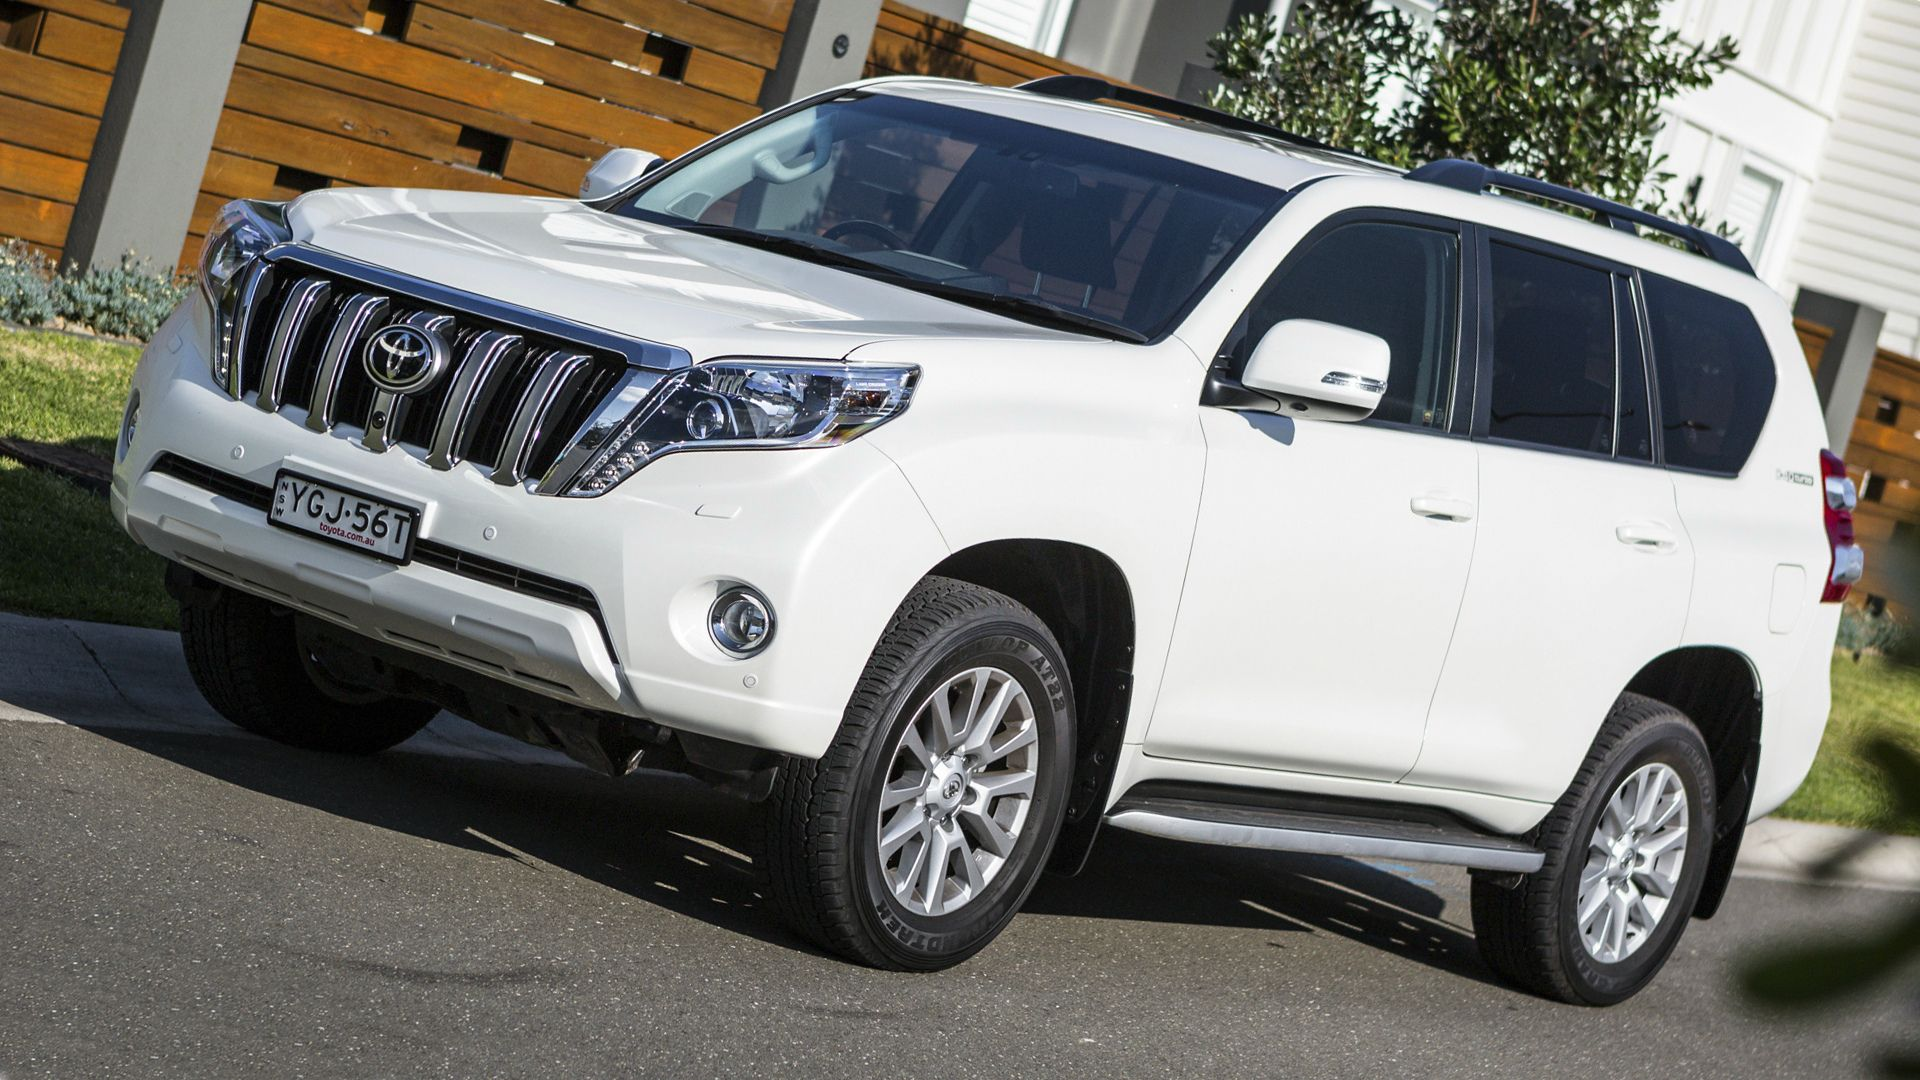 New 2019 Toyota Land Cruiser Prado First Pictures Land Cruiser Toyota Land Cruiser Prado Toyota